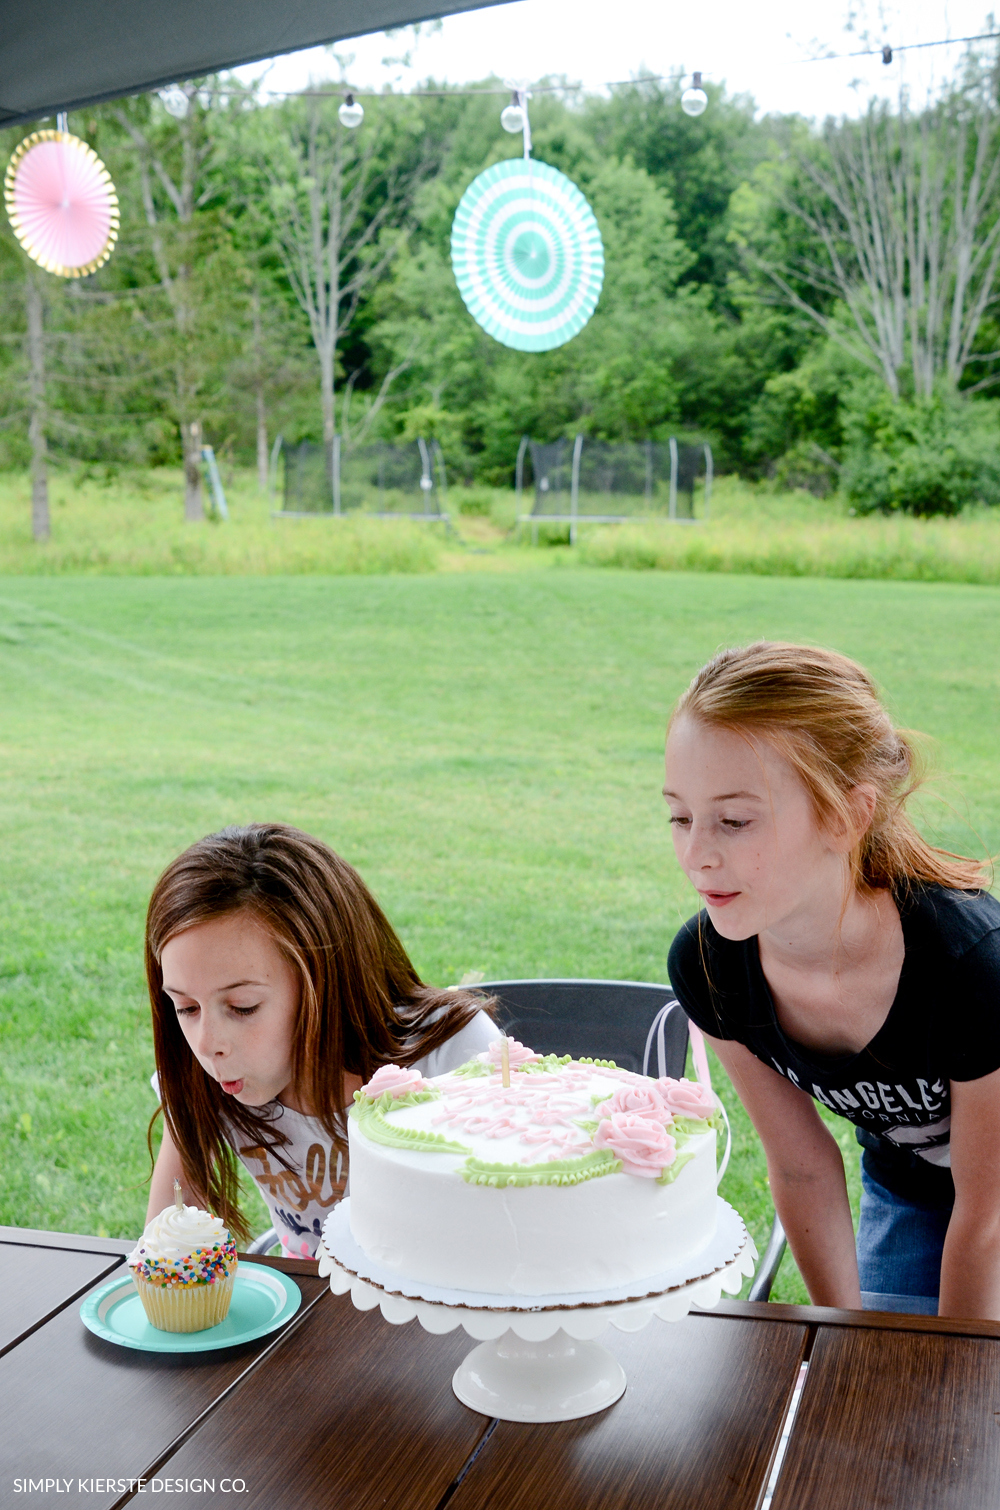 chairs under 100 dollars crate and barrel milo chair outdoor tween girl birthday party for $100! - simply kierste design co.